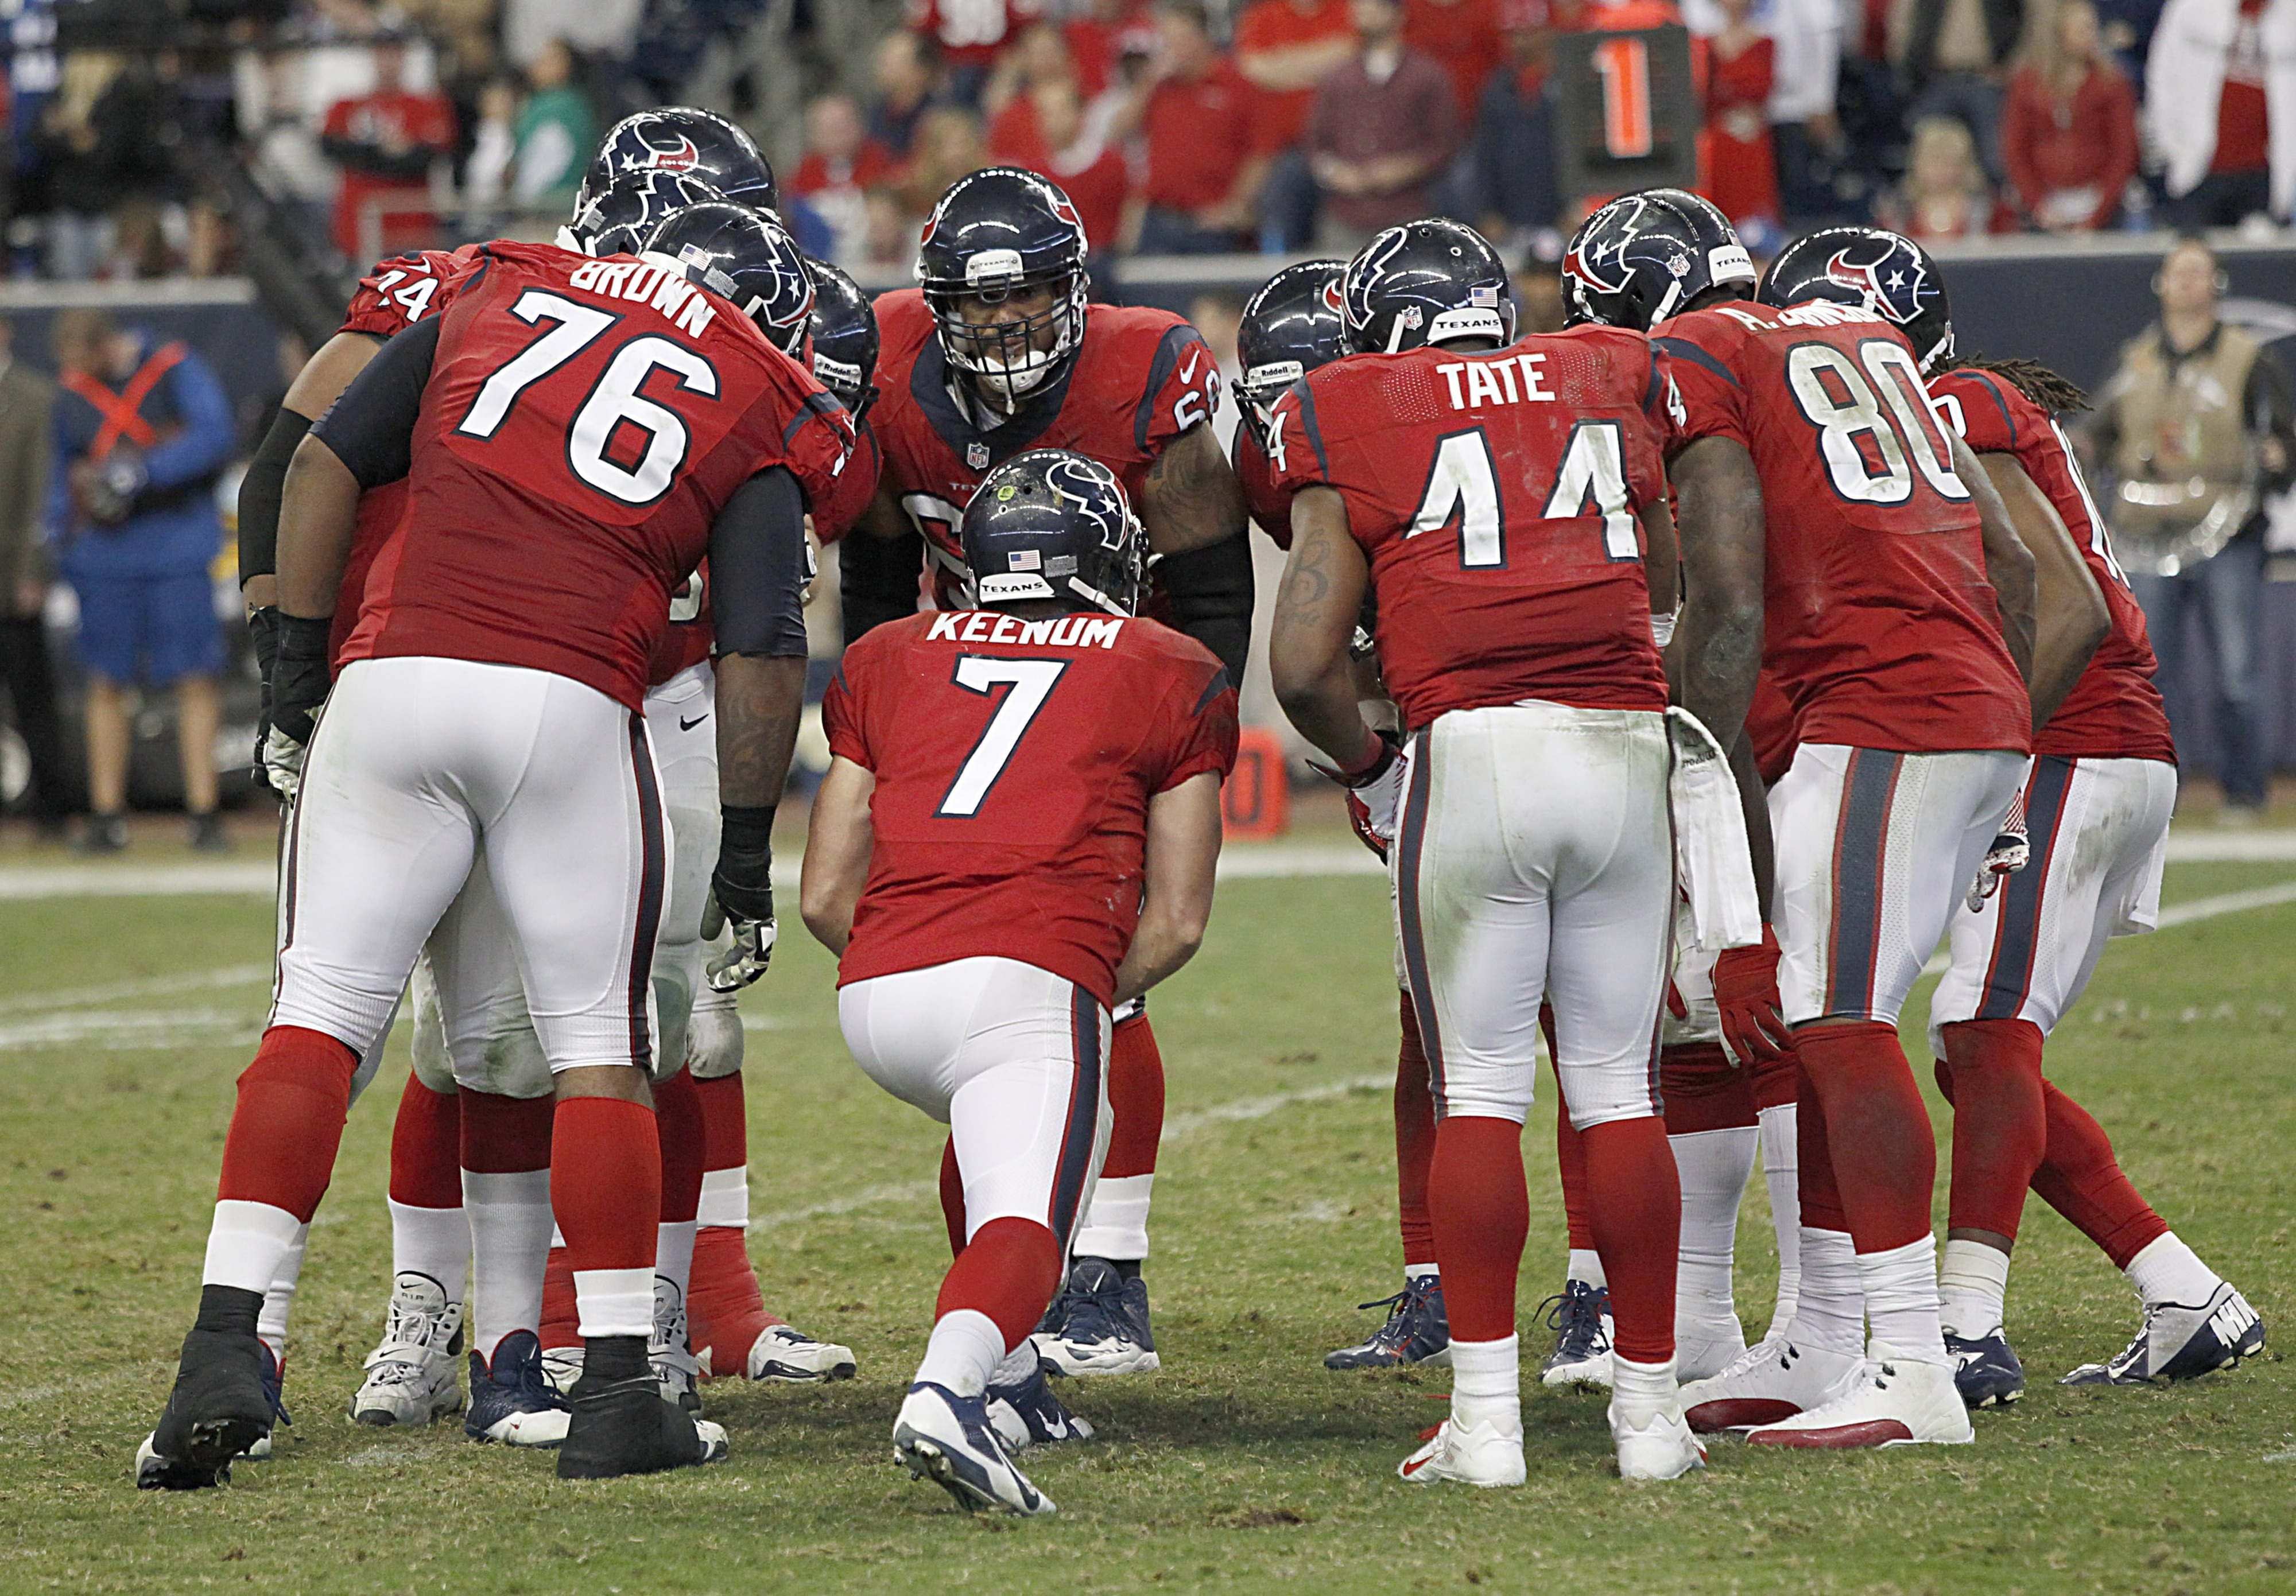 Keenum is after the hearts and minds of all Texans fans.